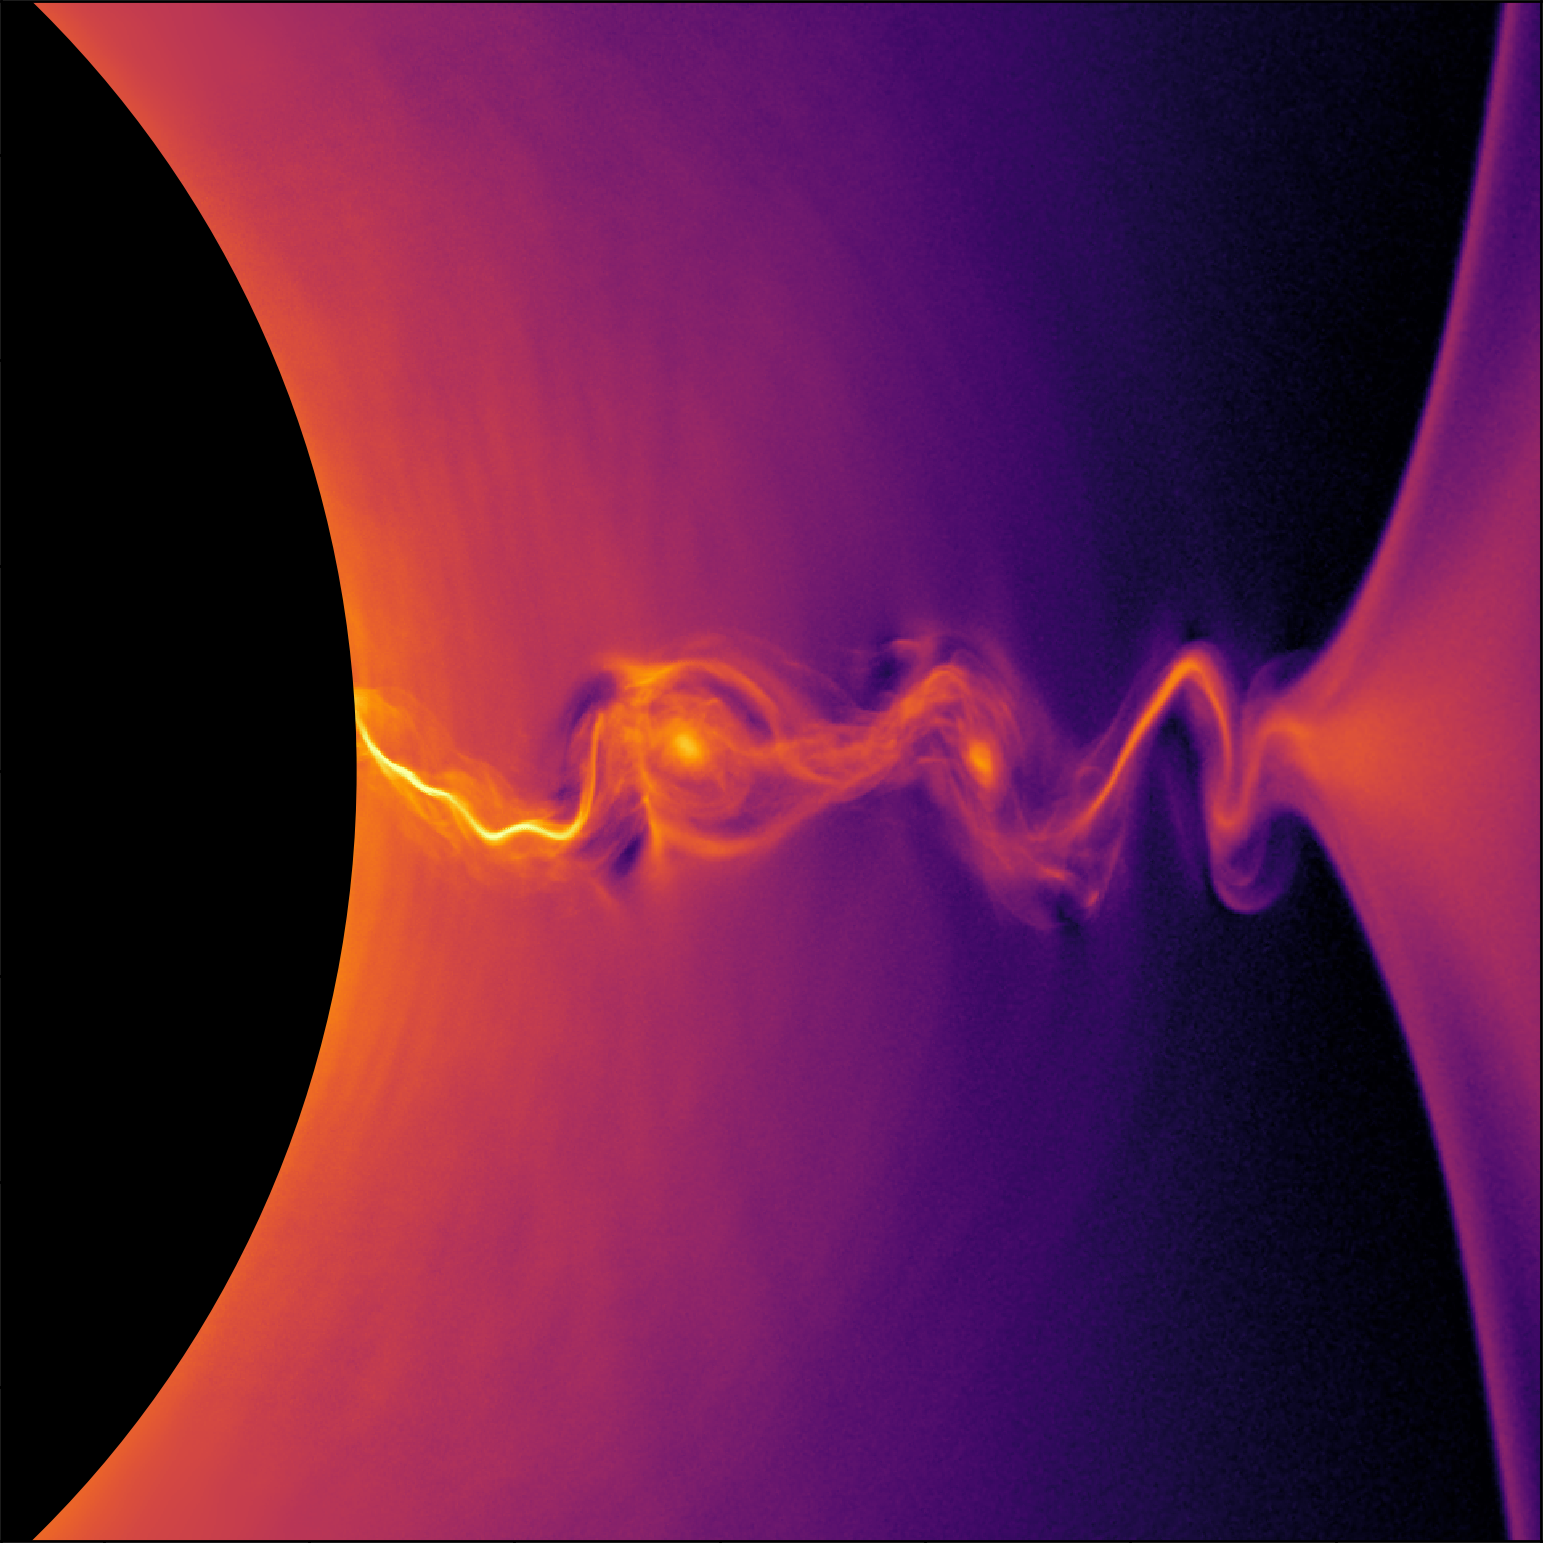 This visualization of a general-relativistic collisionless plasma simulation shows the density of positrons near the event horizon of a rotating black hole. Plasma instabilities produce island-like structures in the region of intense electric current. (Credit: Kyle Parfrey et al./Berkeley Lab)